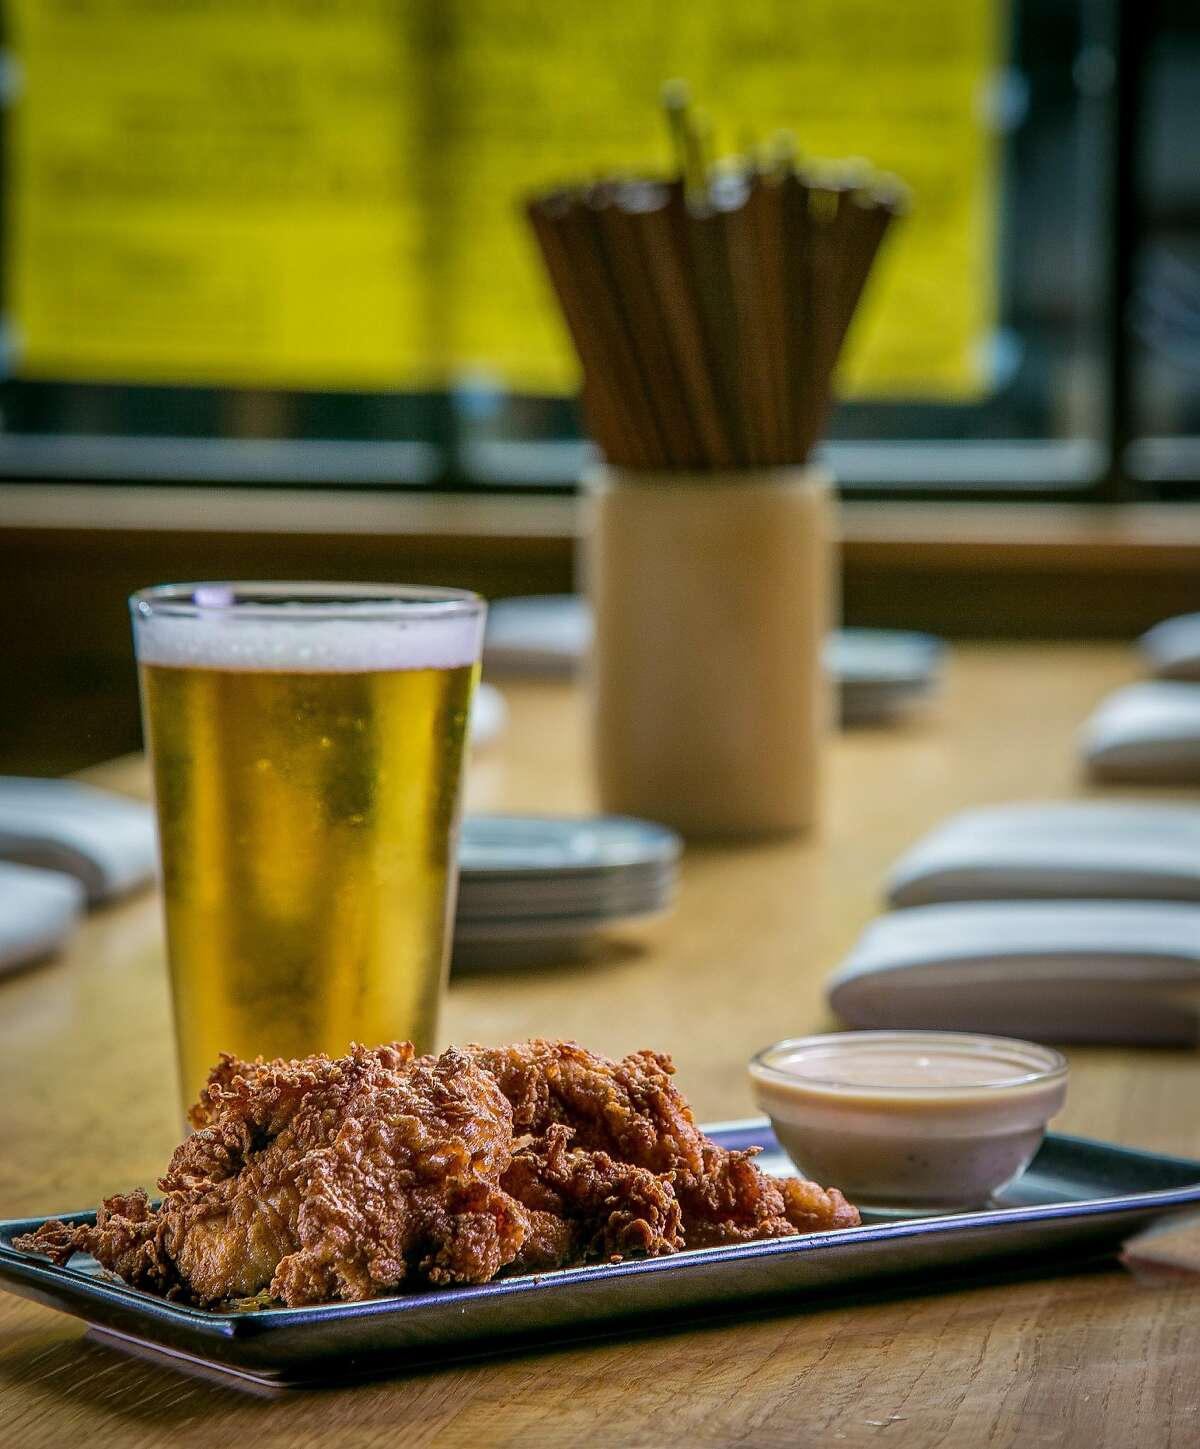 The Chubby Fried Chicken with a beer at Chubby Noodle in San Francisco, Calif., is seen on July 21st, 2015.